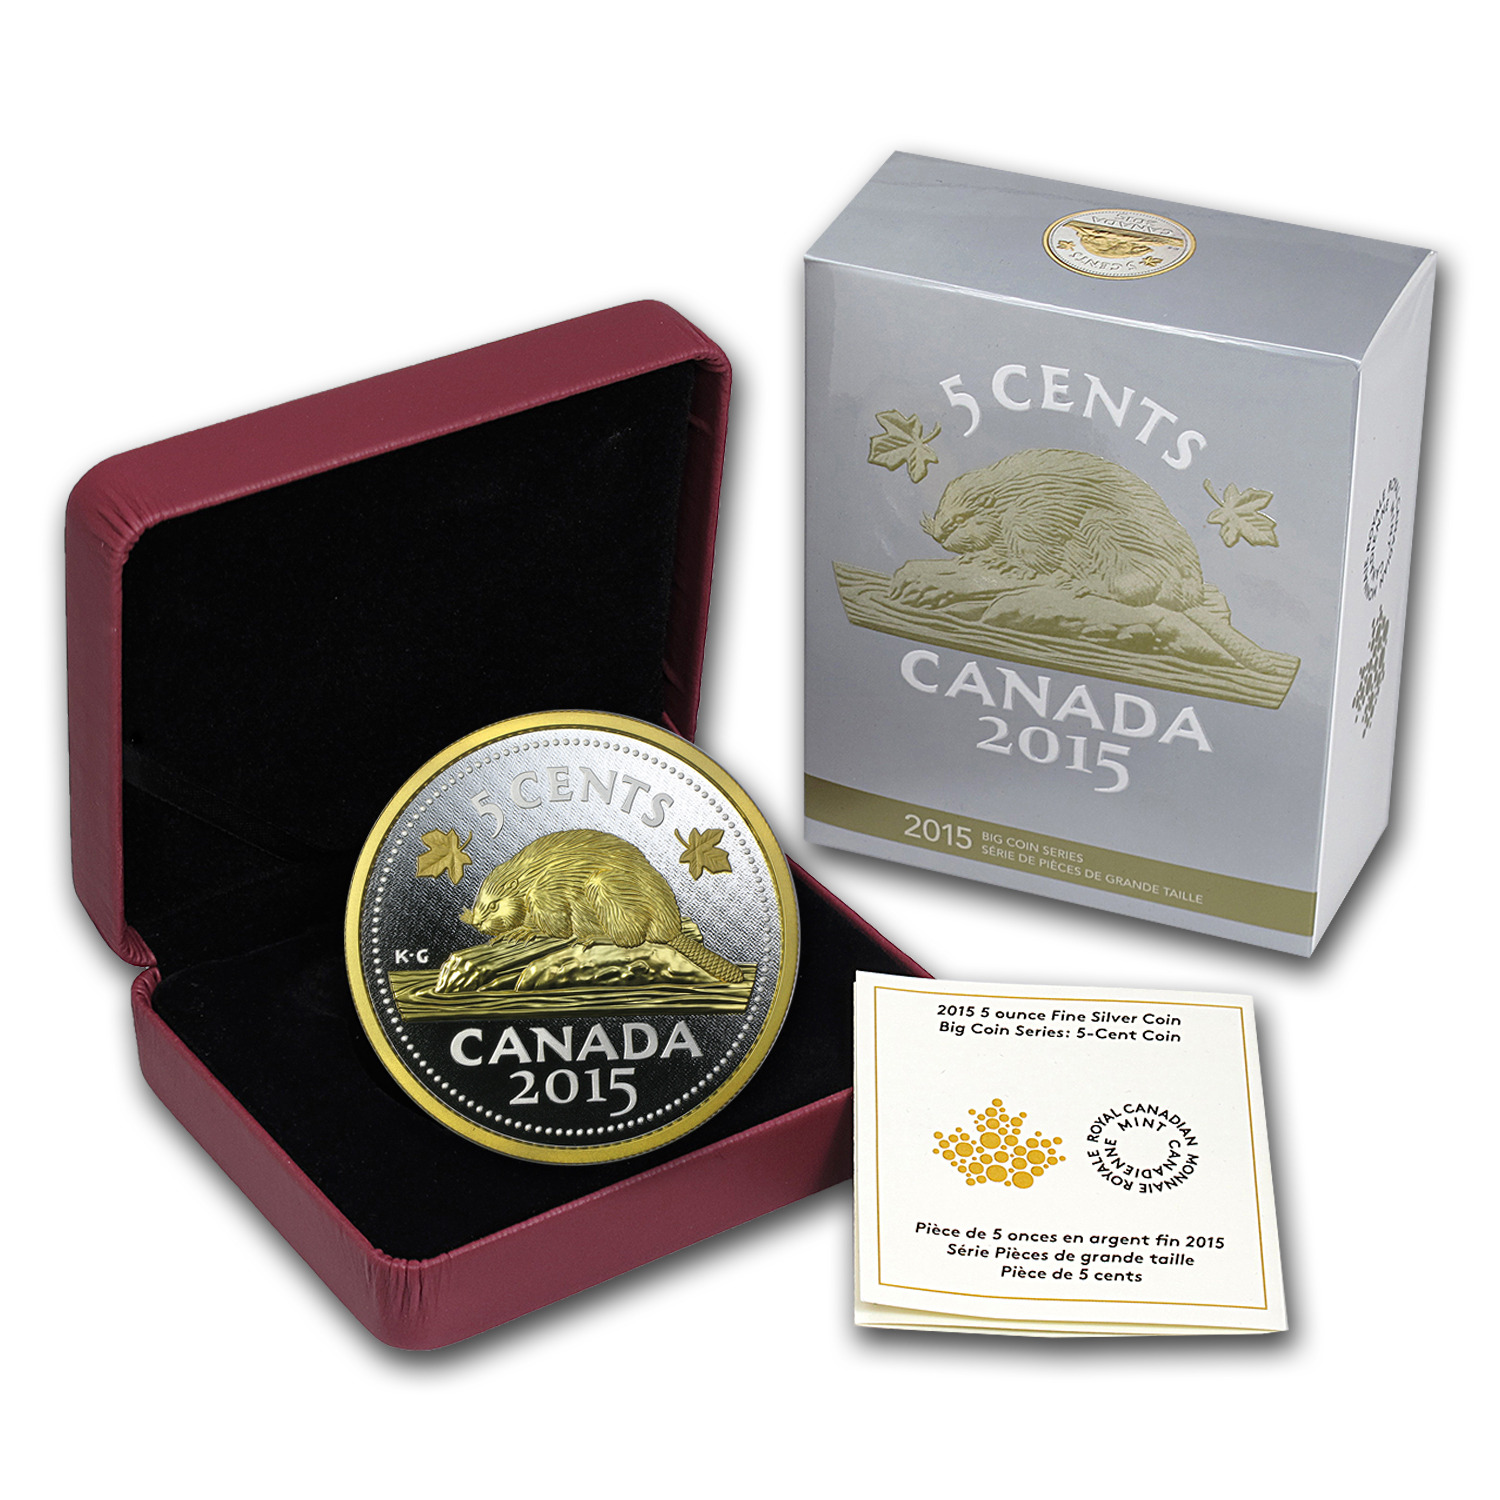 2015 Canada 5 oz Proof Silver Big Coin Series (5 Cent Coin)